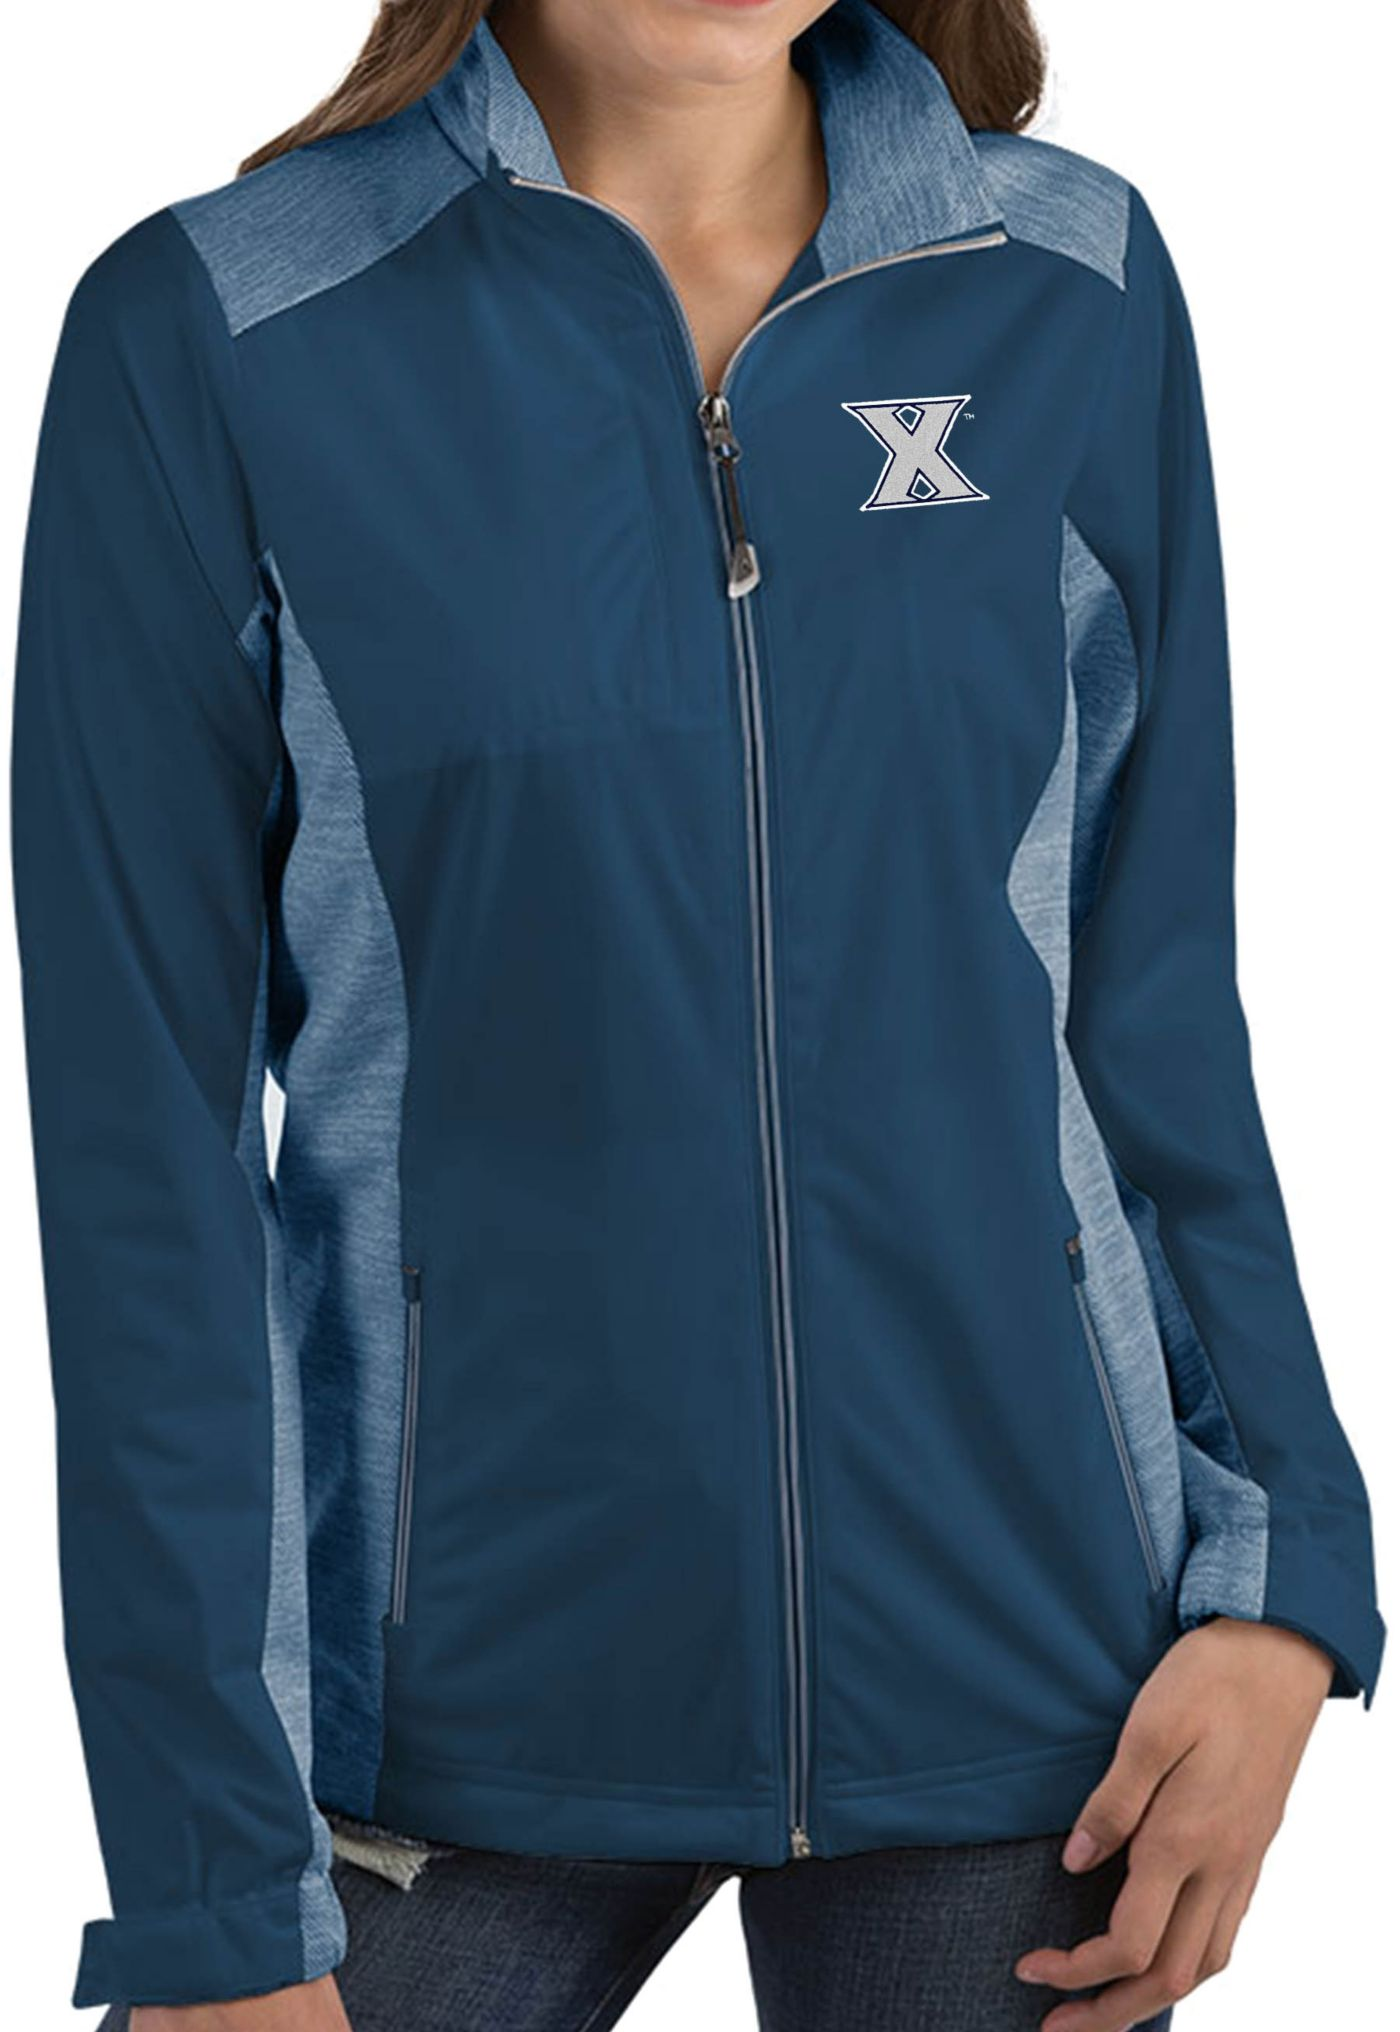 Antigua Women's Xavier Musketeers Blue Revolve Full-Zip Jacket